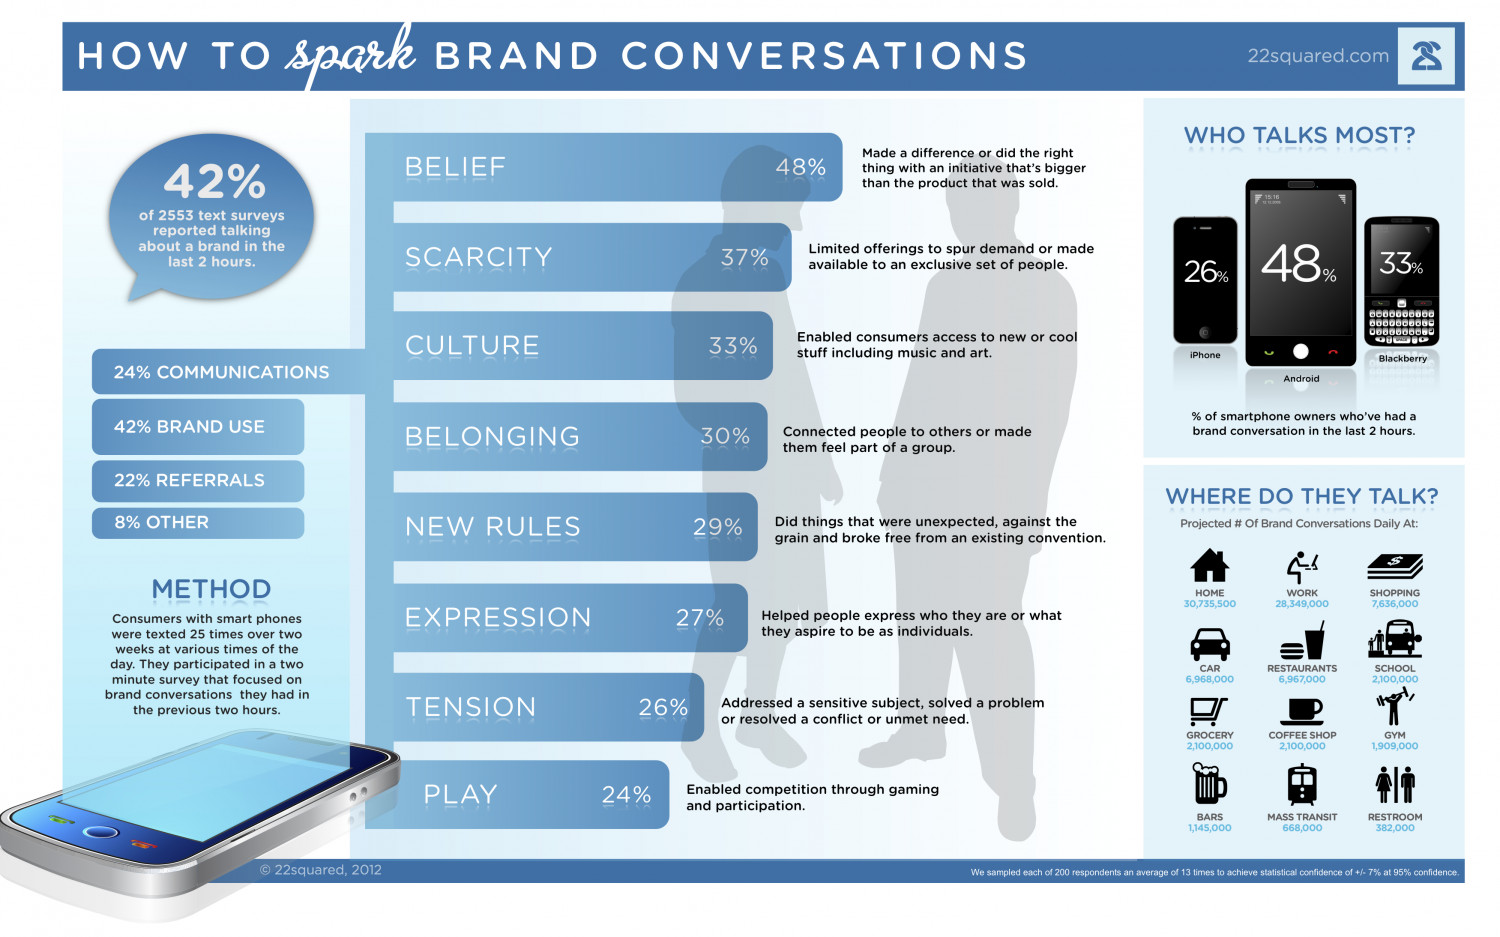 How to Spark Brand Conversations Infographic